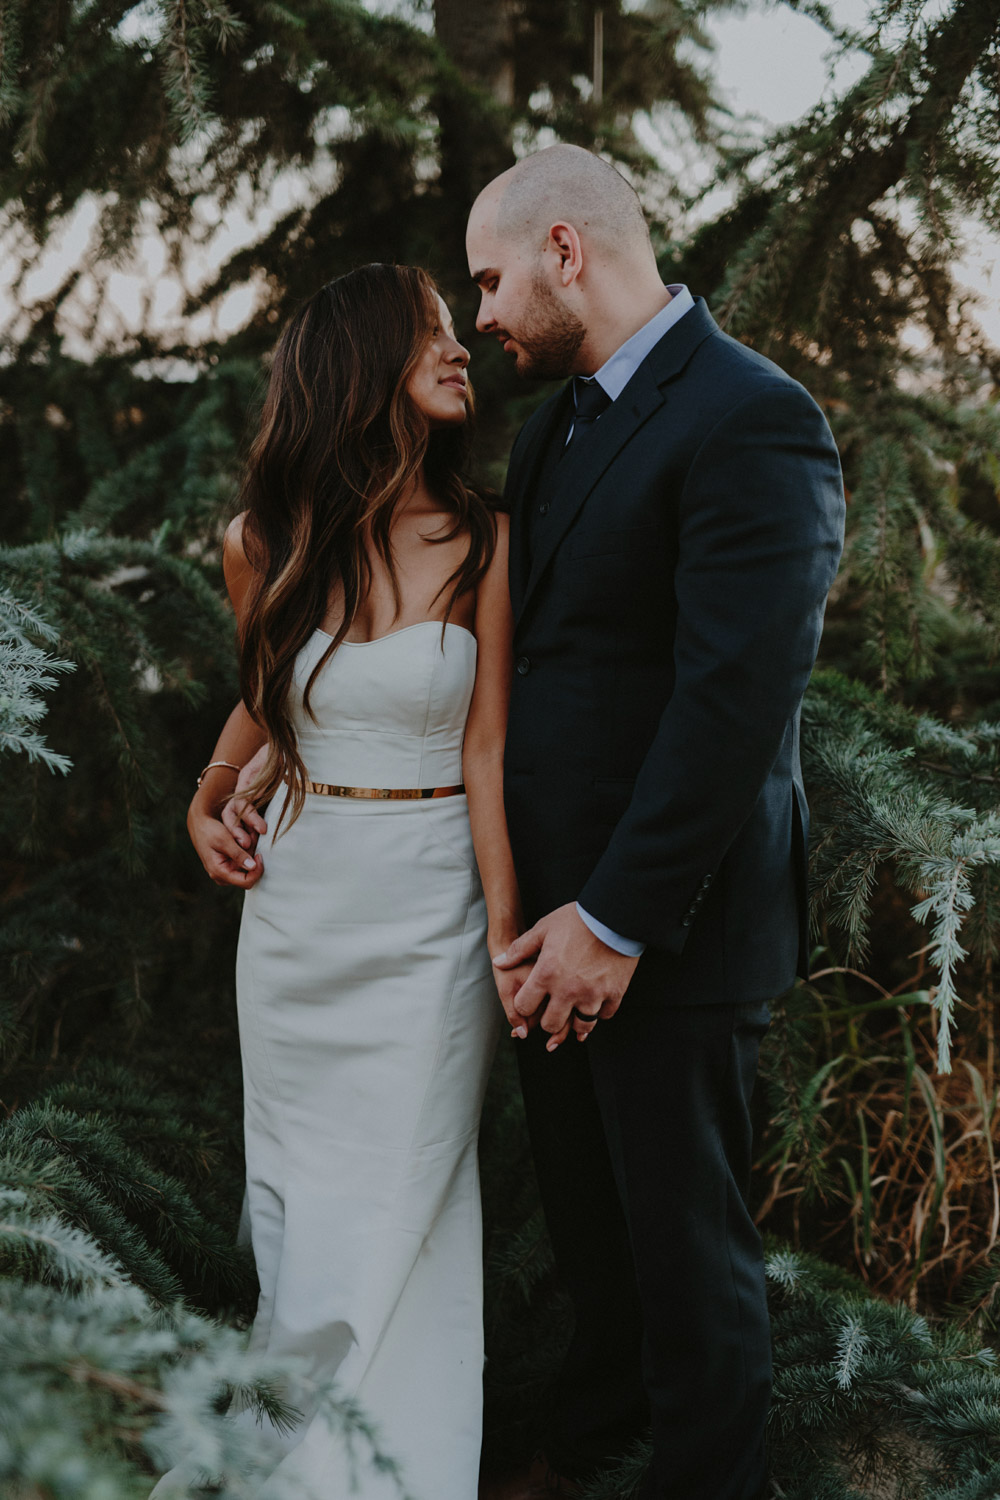 Greg-Petersen-San-Francisco-Wedding-Photographer-1-78.jpg